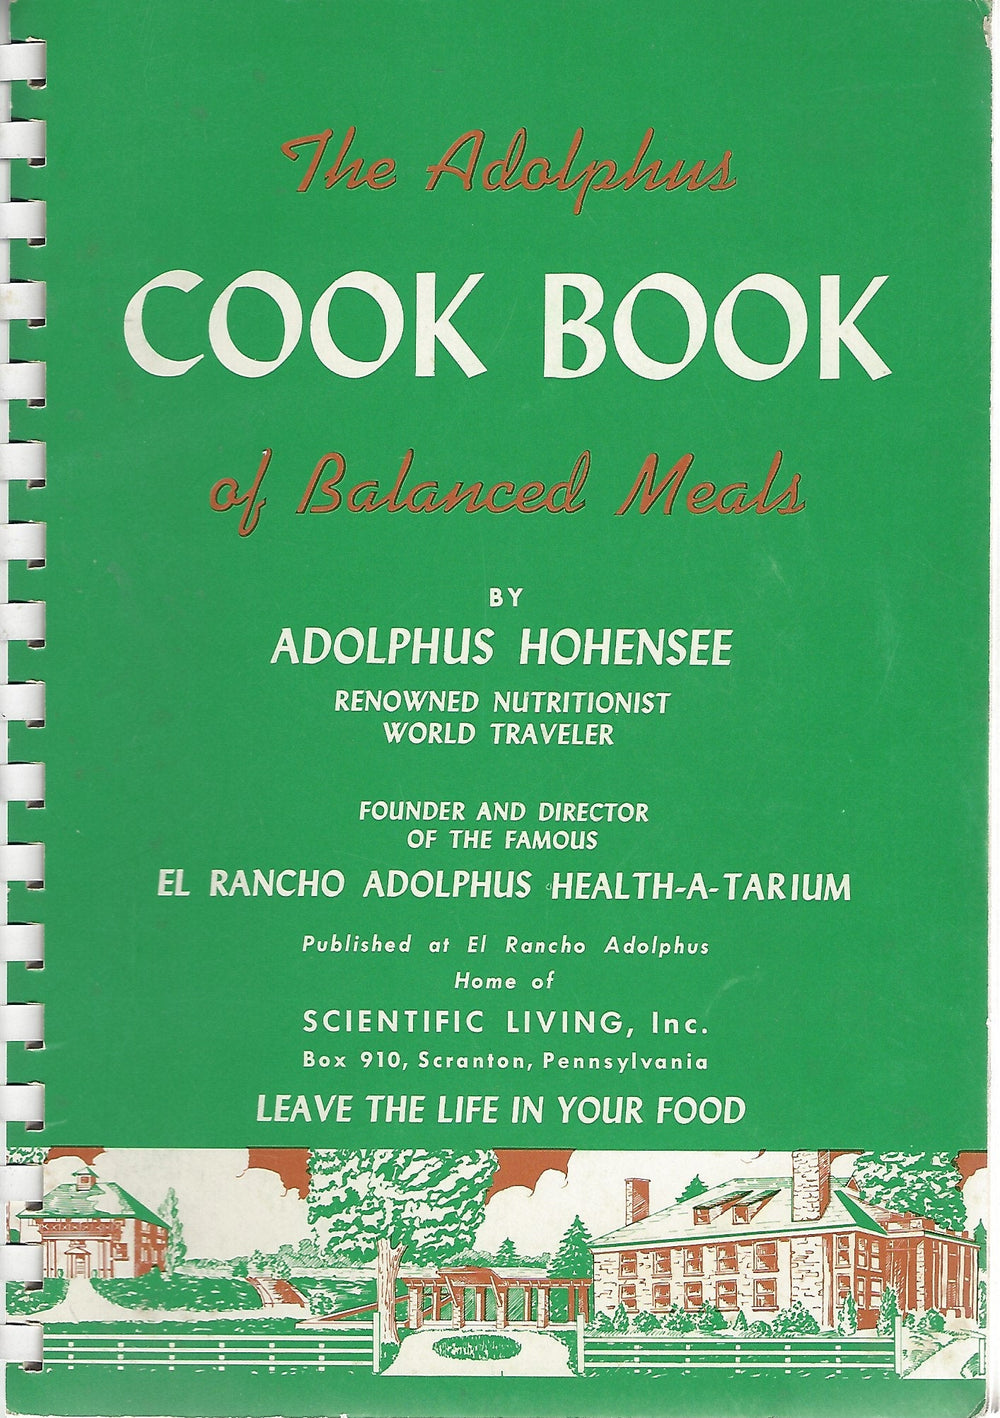 The Adolphus Cook Book of Balanced Meals by Adolphus Hohensee (Spiral) 1951